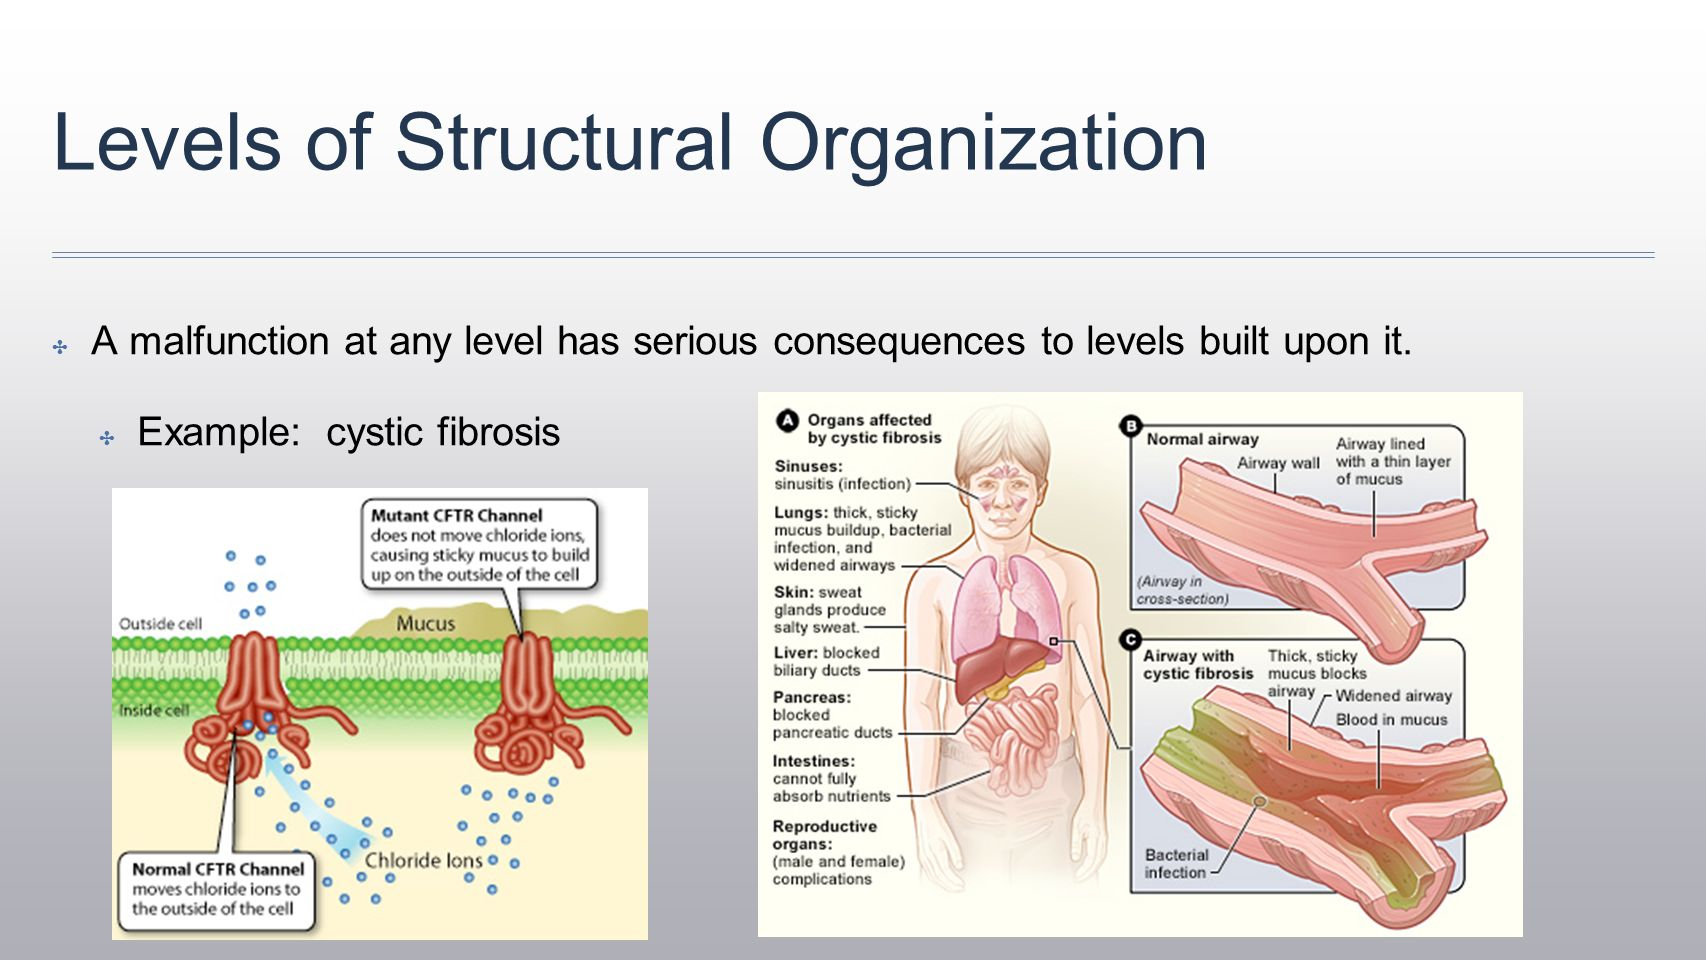 Encantador Levels Of Structural Organization Anatomy And Physiology ...